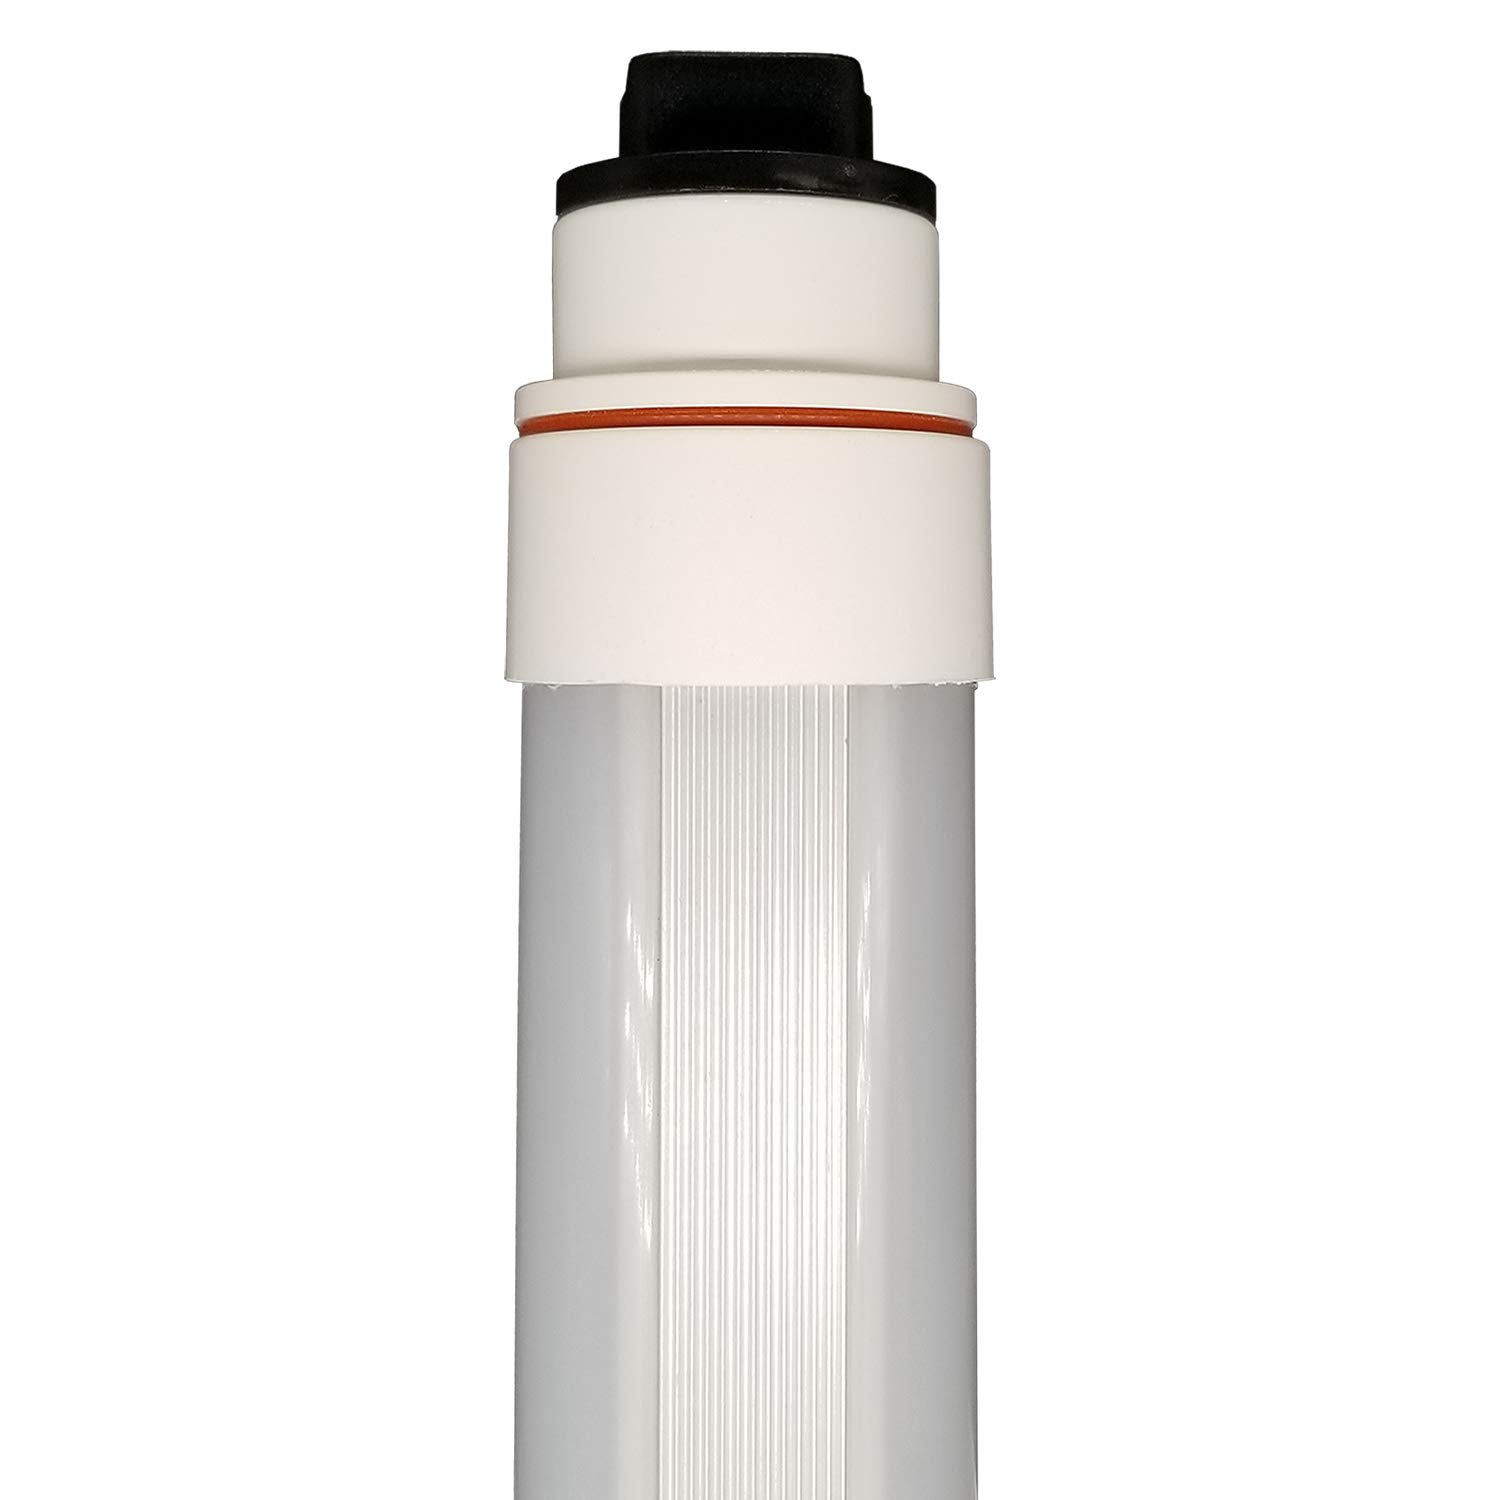 NYLL - R17D Base 64 Inch/ 64'' Plug& Play LED Tube - Daylight T12/HO (Dual Sided) LED Directly Relamp& Replace 80W 64'' Fluorescent Bulb F64T12/HO (Without Rewiring or Modification) - Ballast Required!